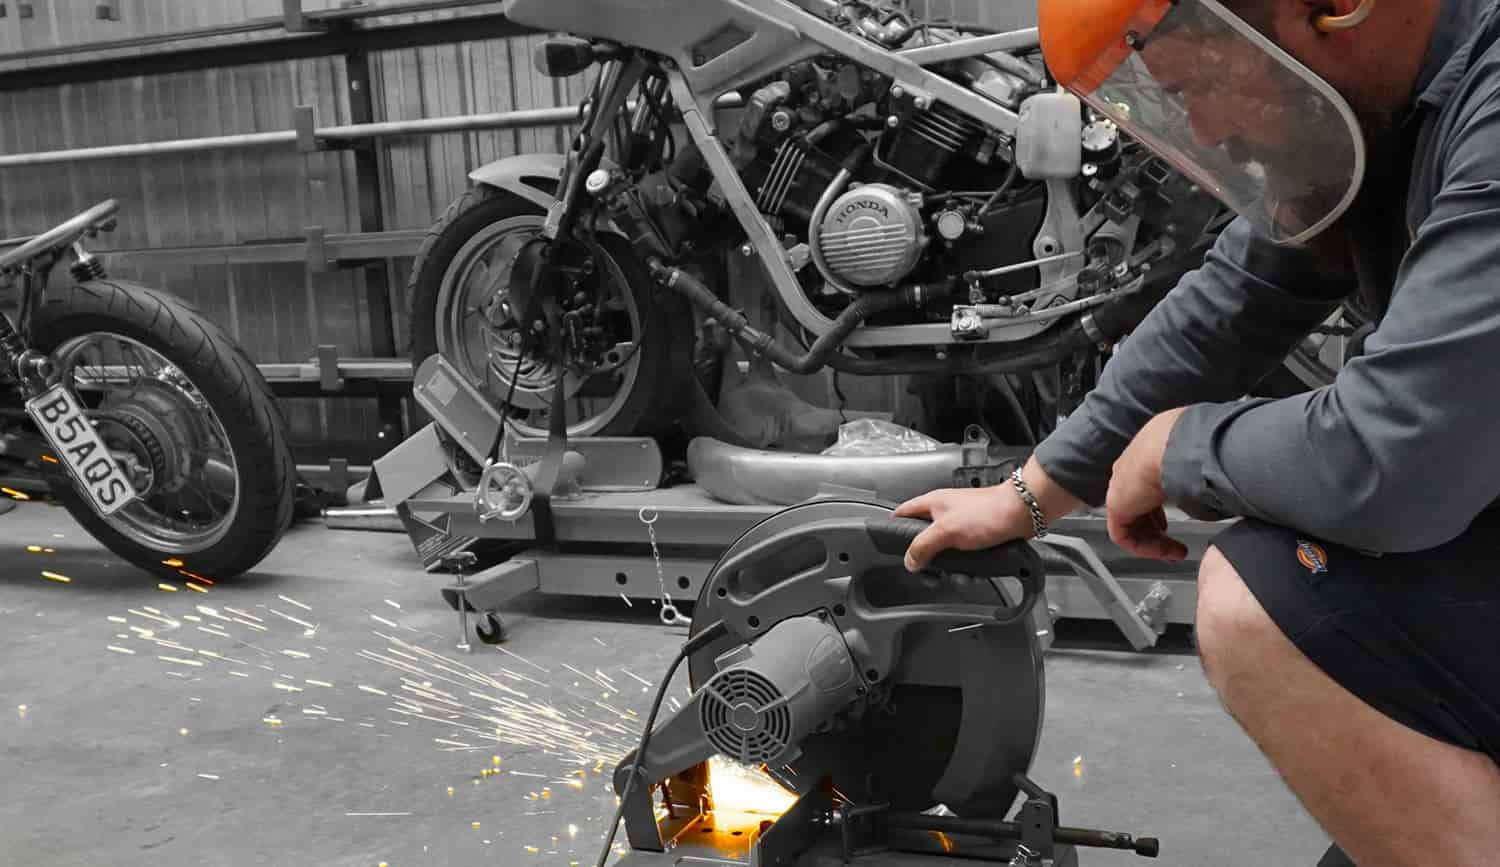 Resurgence Jeans VBS Motorcycles 4